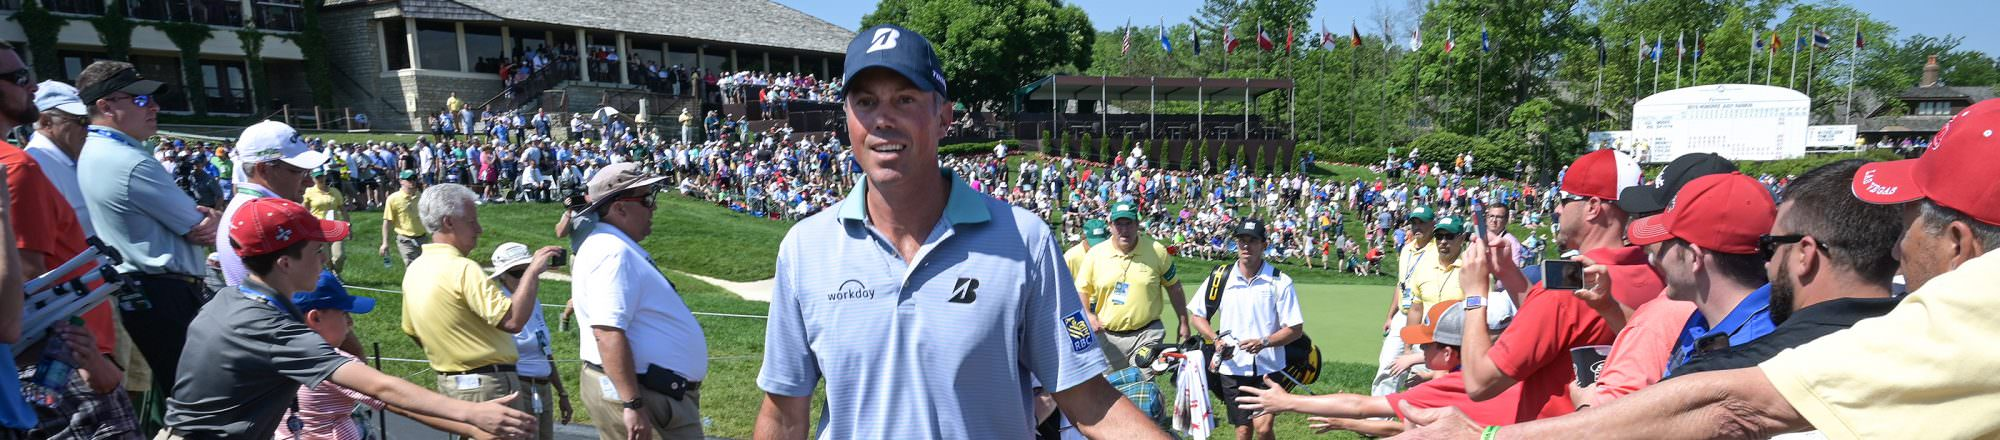 Why Kuchar's reputation is in tatters